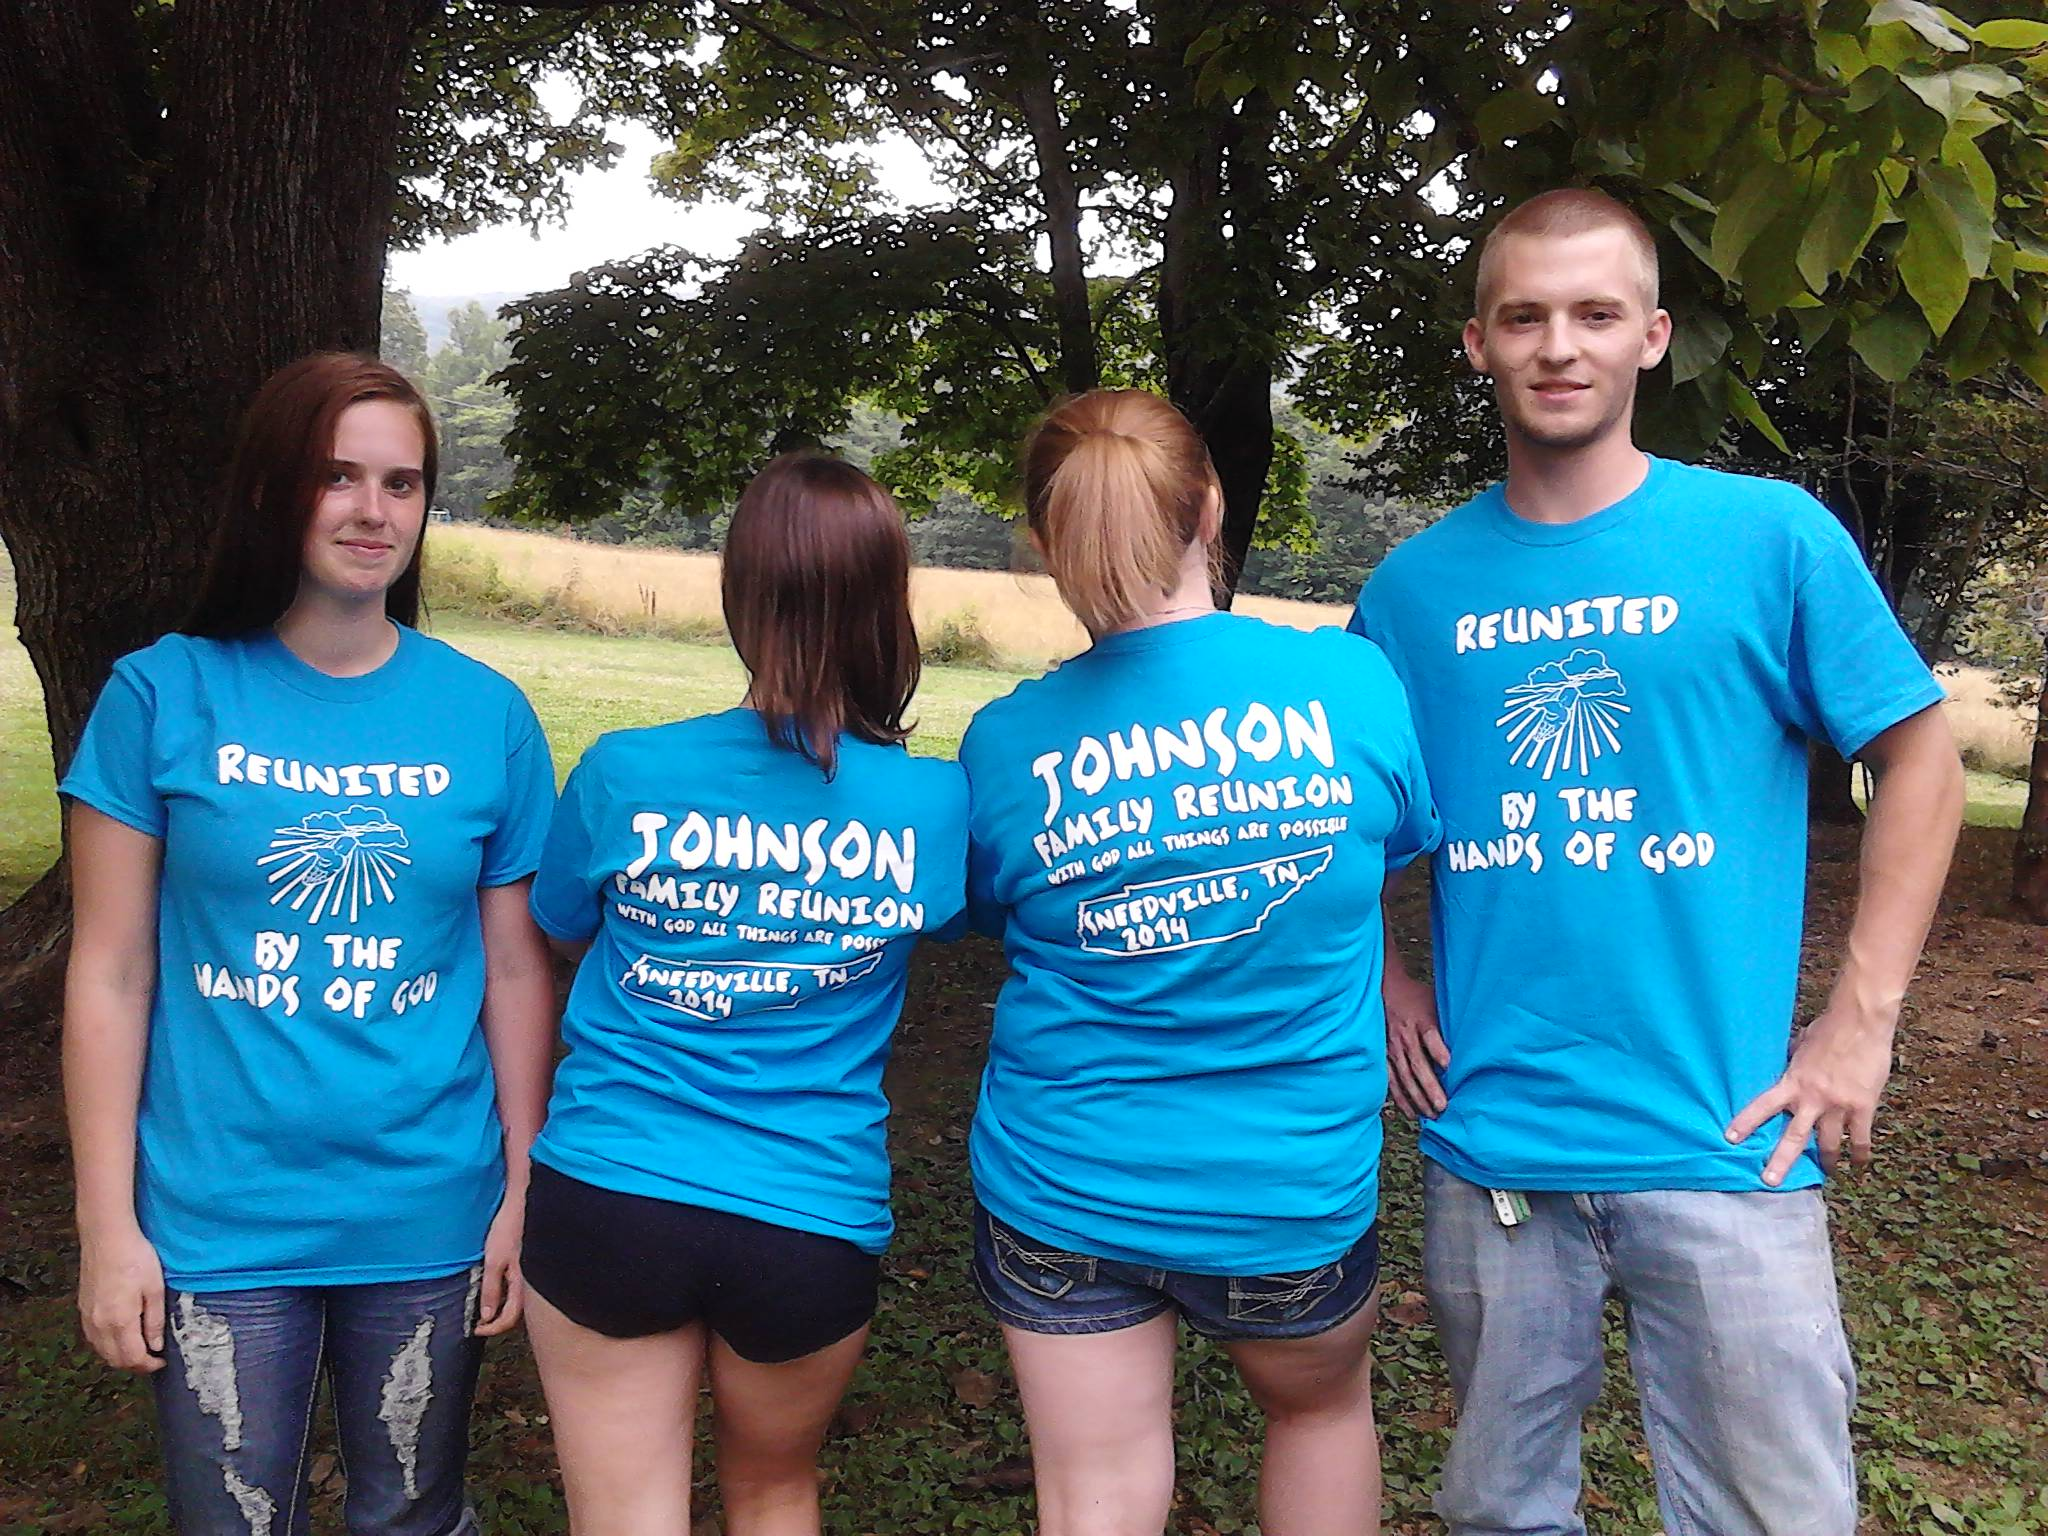 Custom T Shirts For Johnson Family Reunion Shirt Design Ideas